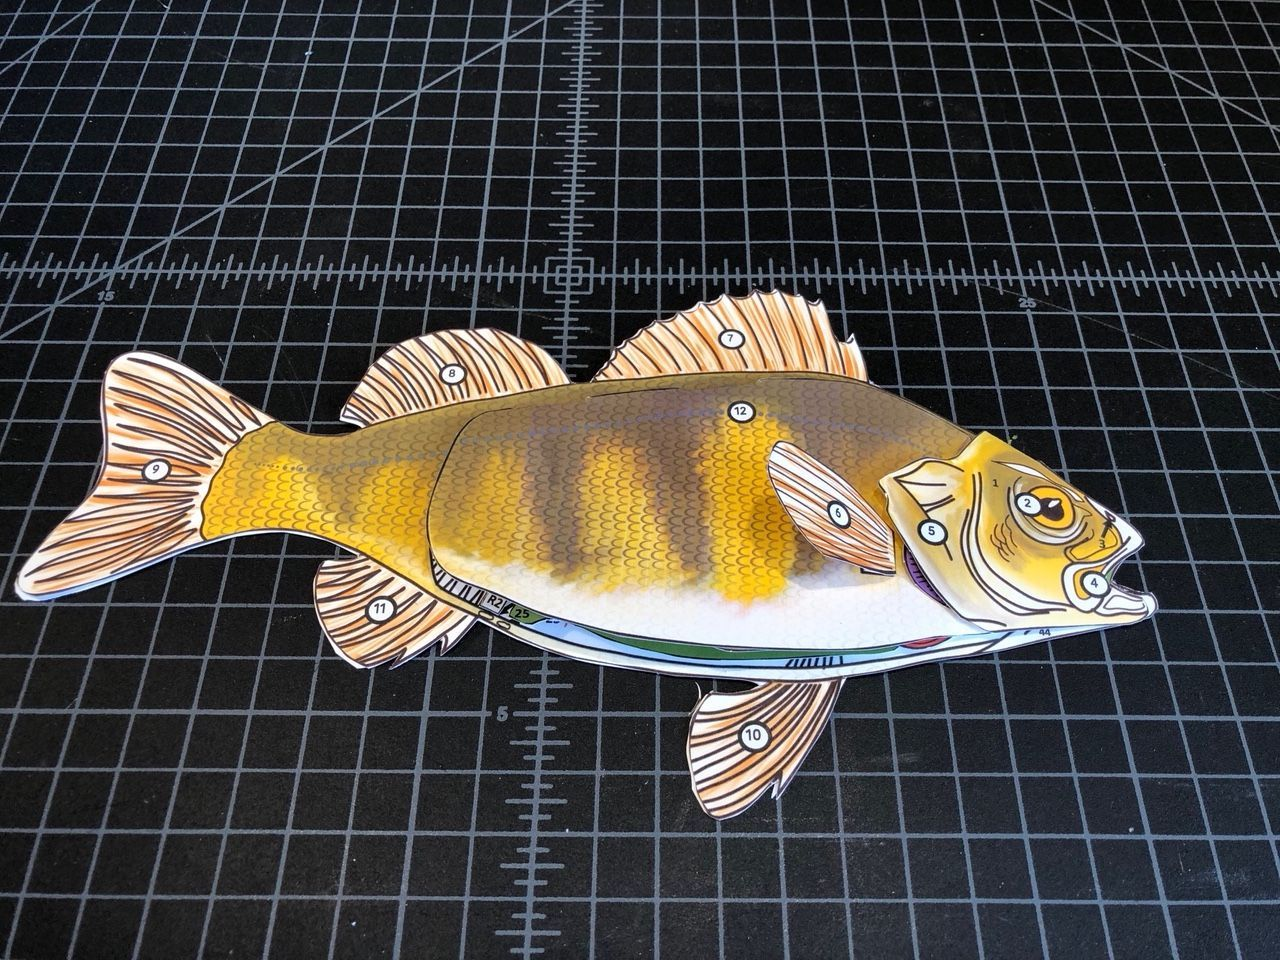 hight resolution of Perch 3-d scienstructable dissection paper fish model. Use as a  cruelty-free exploration